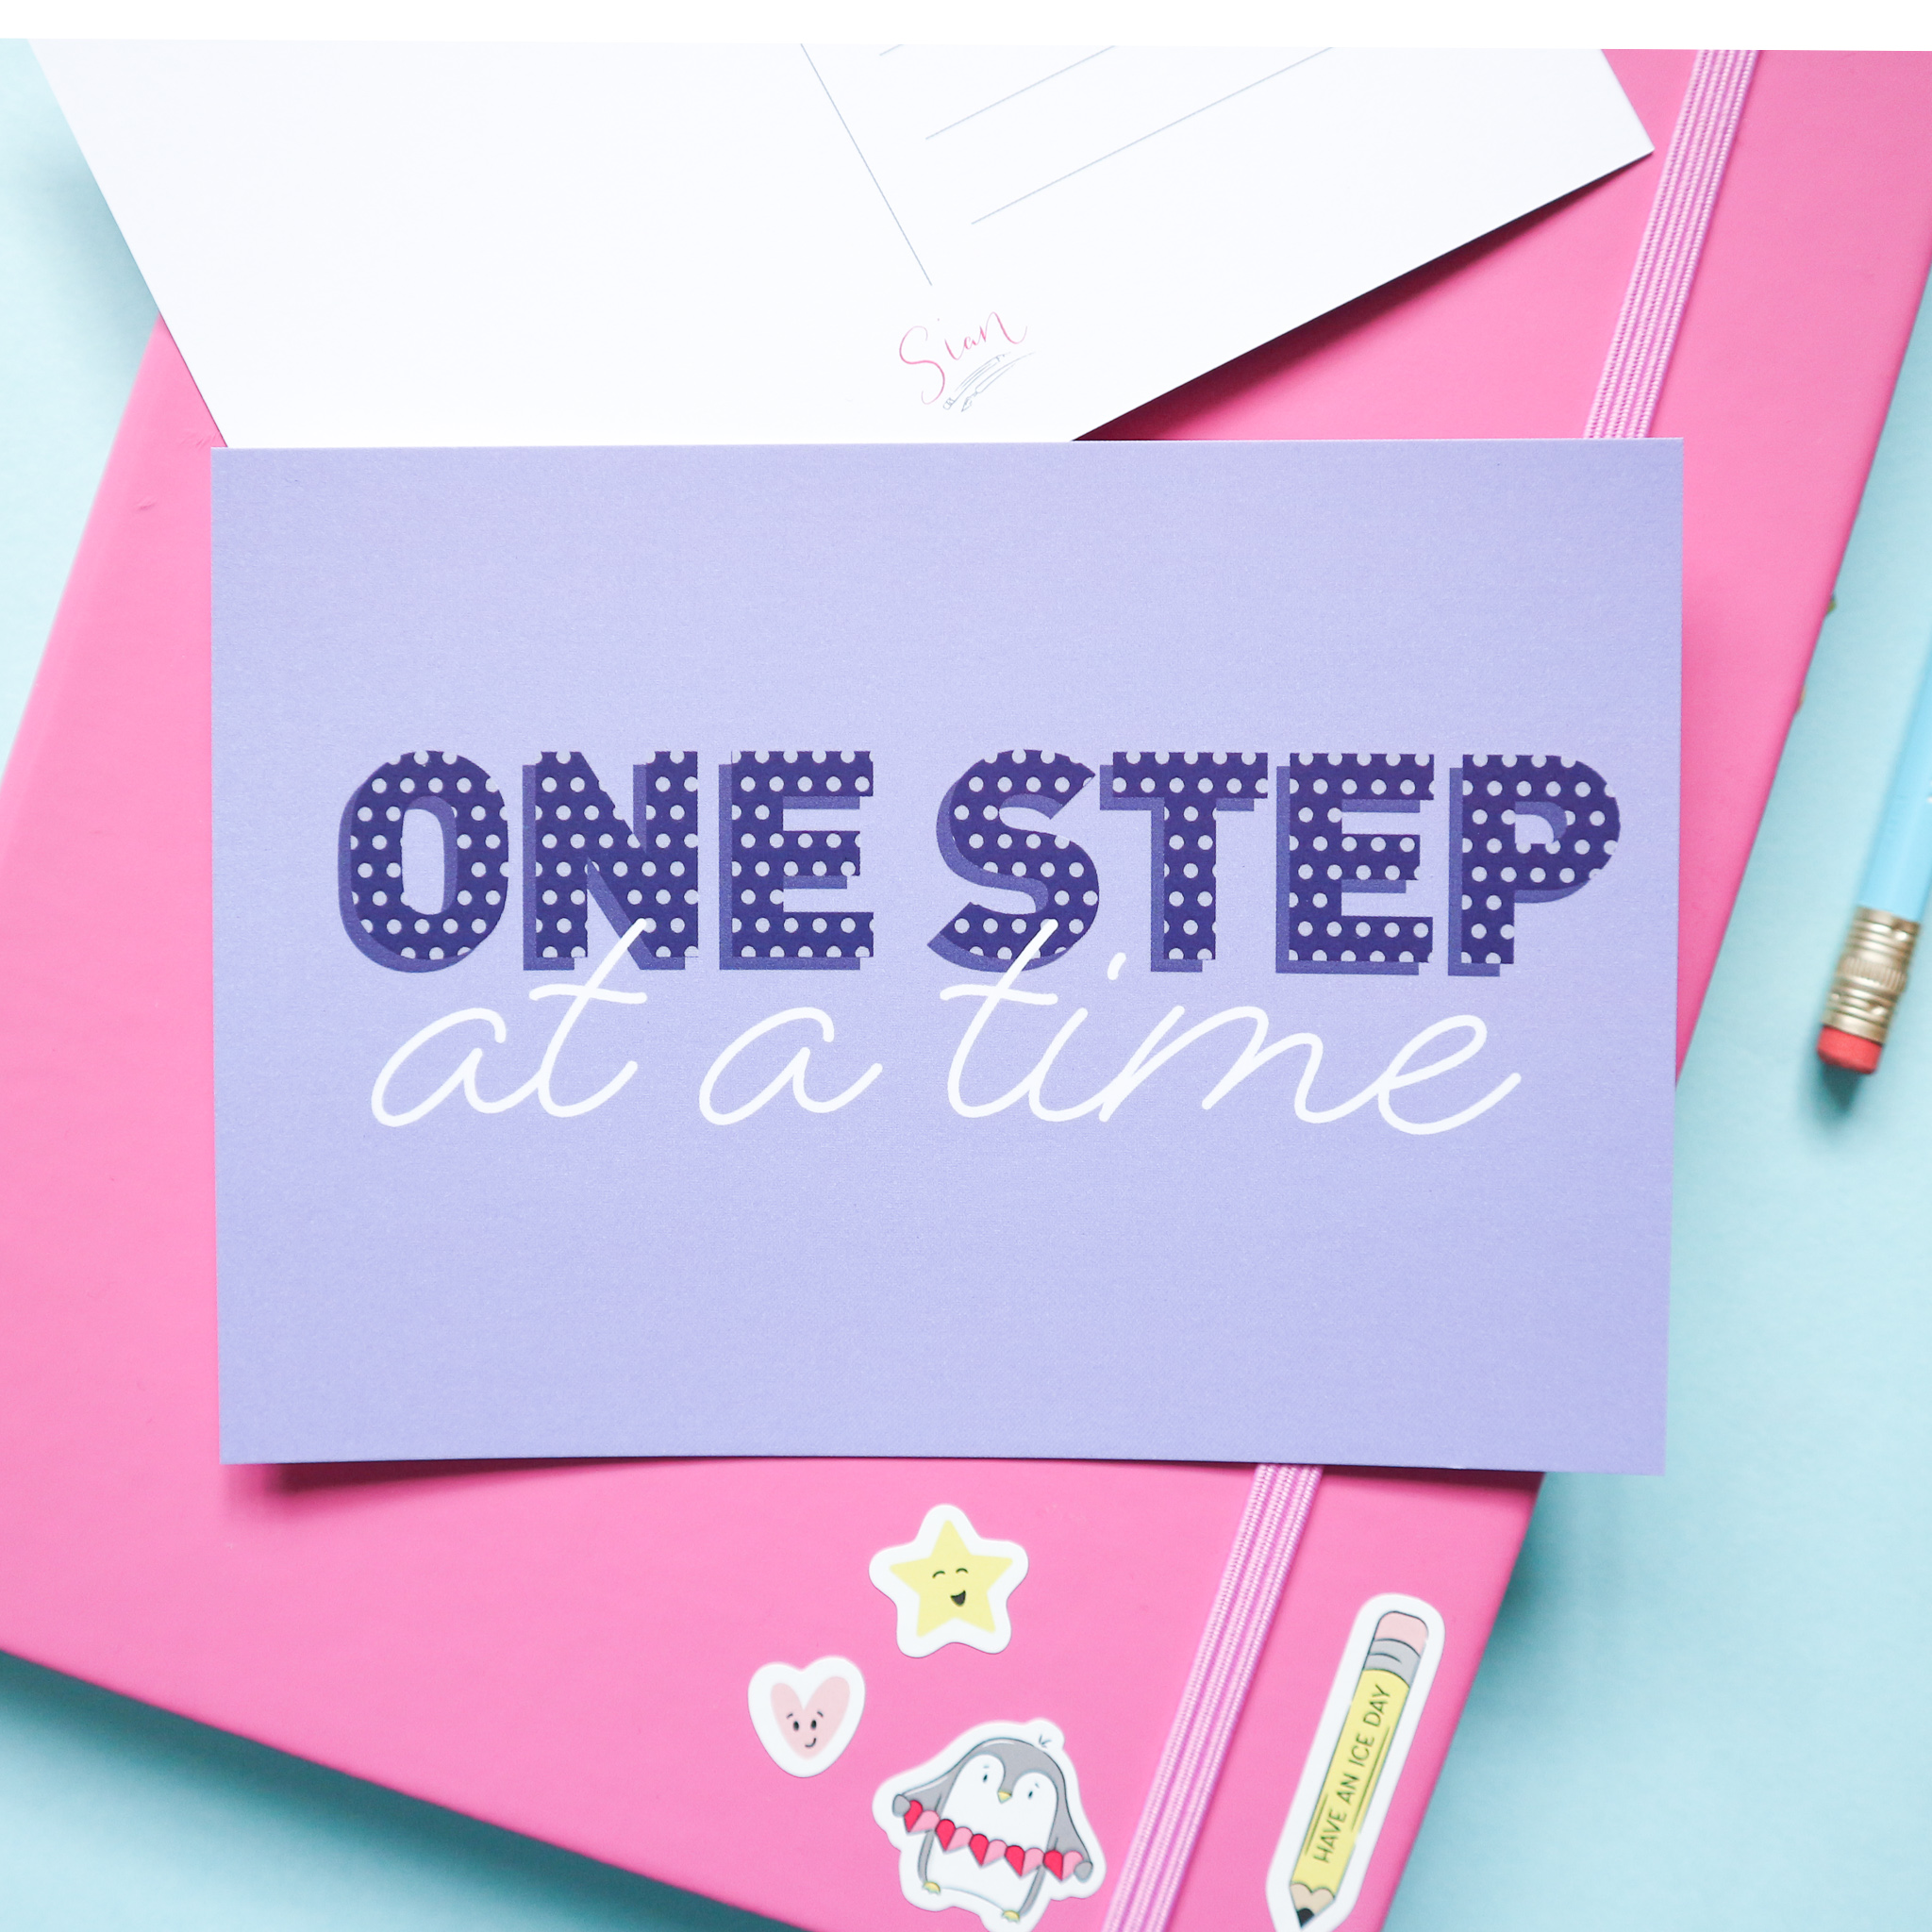 One Step at a Time Postcard Design by Sian Shrimpton